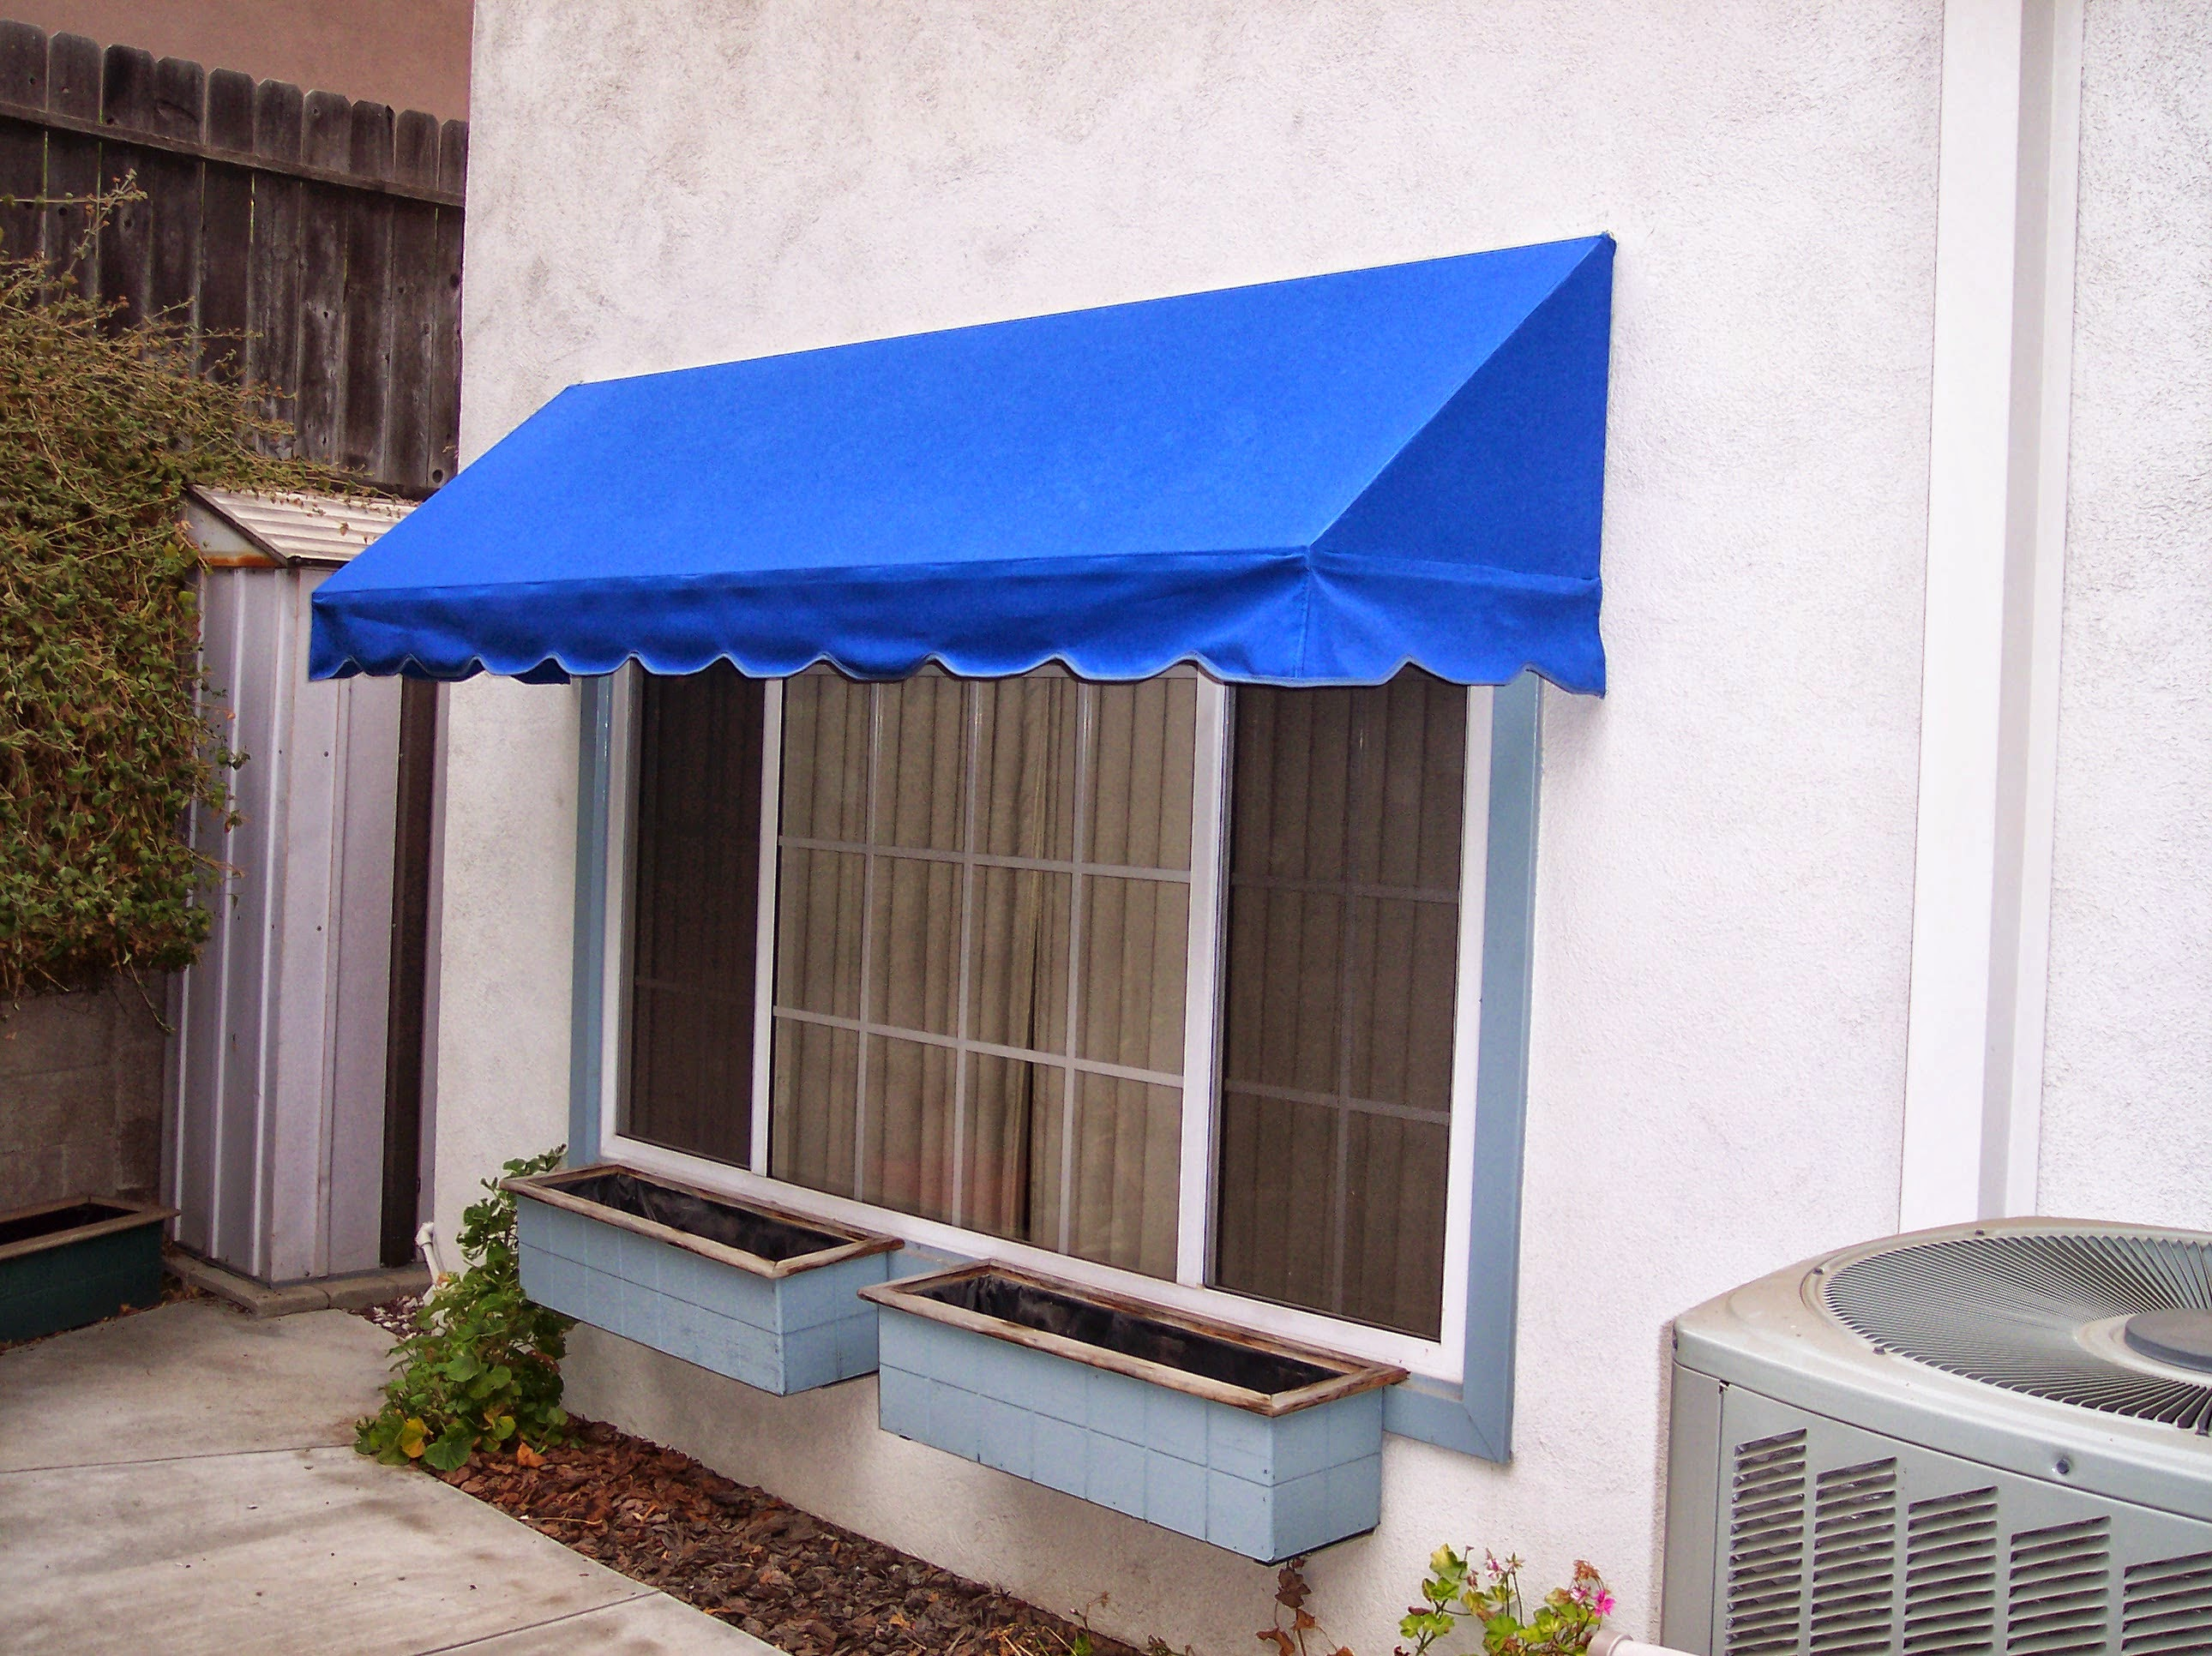 wood aluminum carport san cover patio free figure covers antonio designs awning awnings freestanding standing best